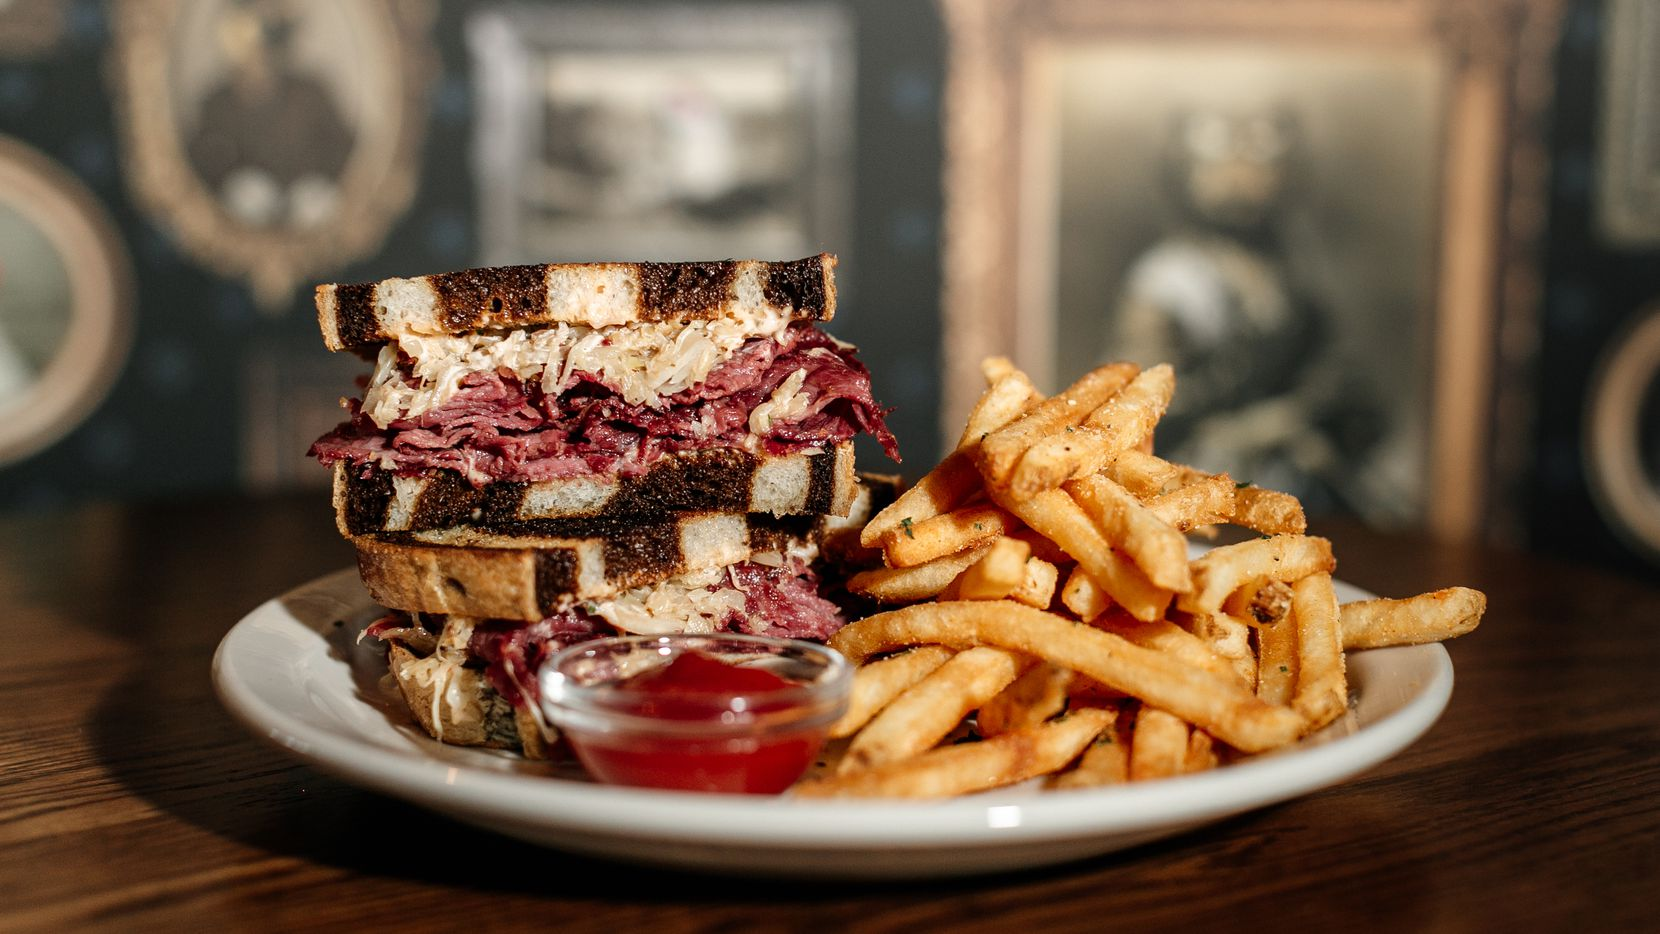 Harwood Arms is a new pub in Dallas selling reuben sandwiches (pictured), plus fish and chips and other across-the-pond dishes. It opens Dec. 7, 2020.